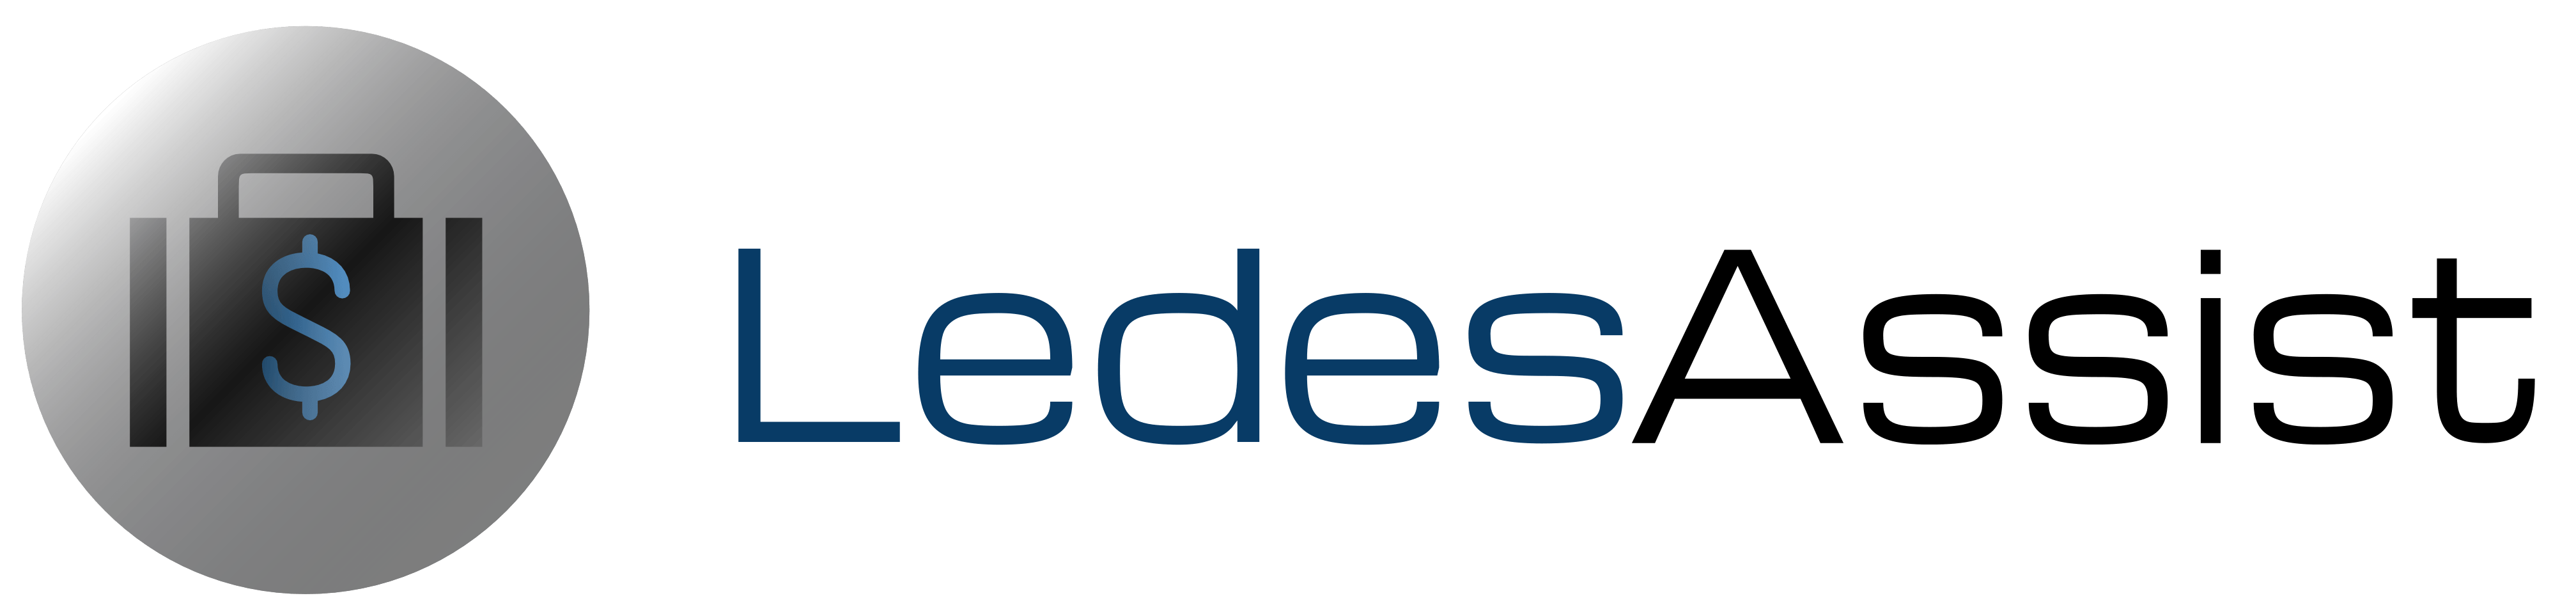 Ledes Format Converter | UTBMS Billing Codes & Coding | LedesAssist from EffortlessLegal LLC